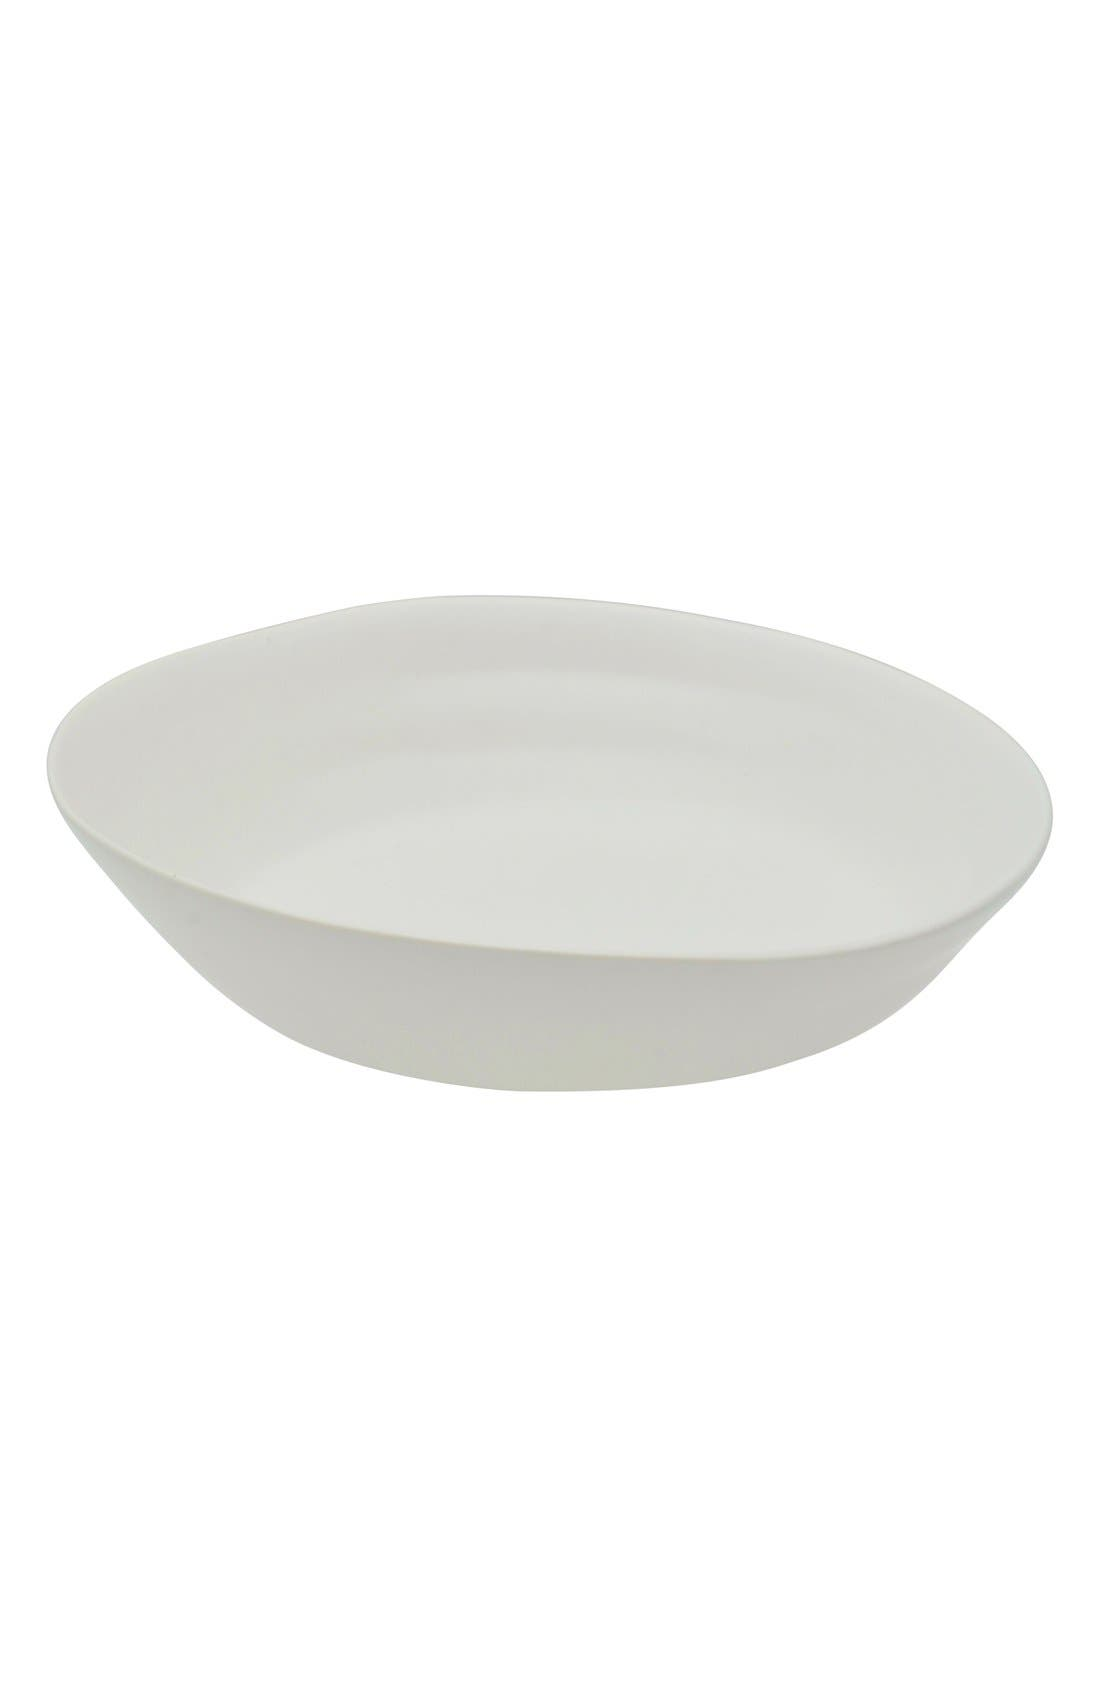 'Ripple' Small Porcelain Side Dishes,                         Main,                         color, White